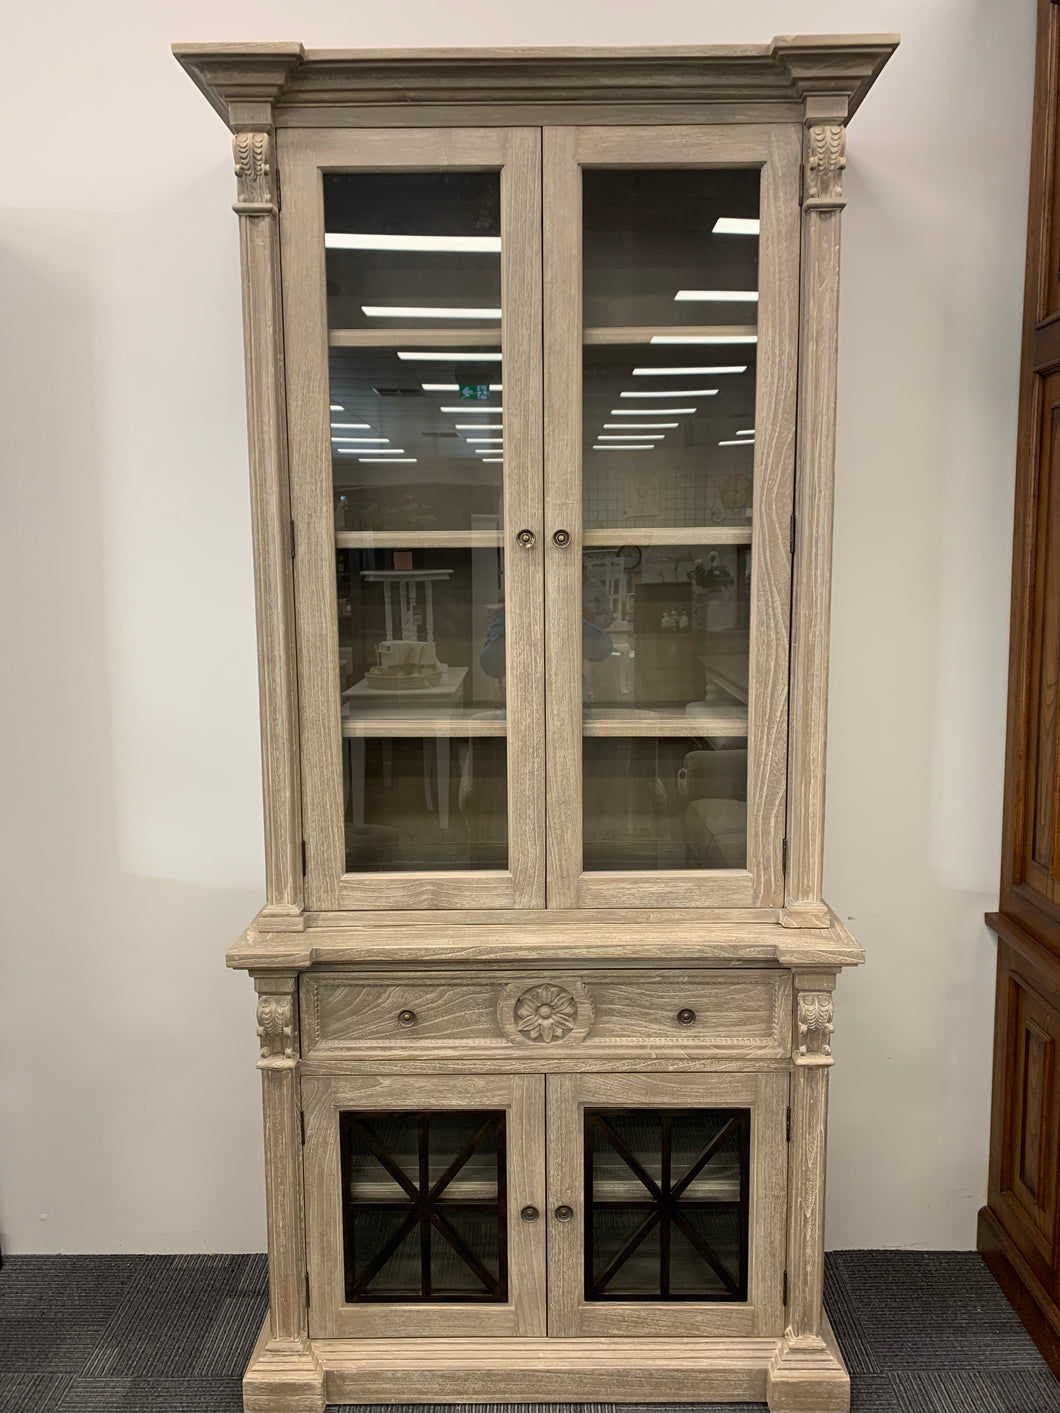 Townsley Bookcase with Glass Doors